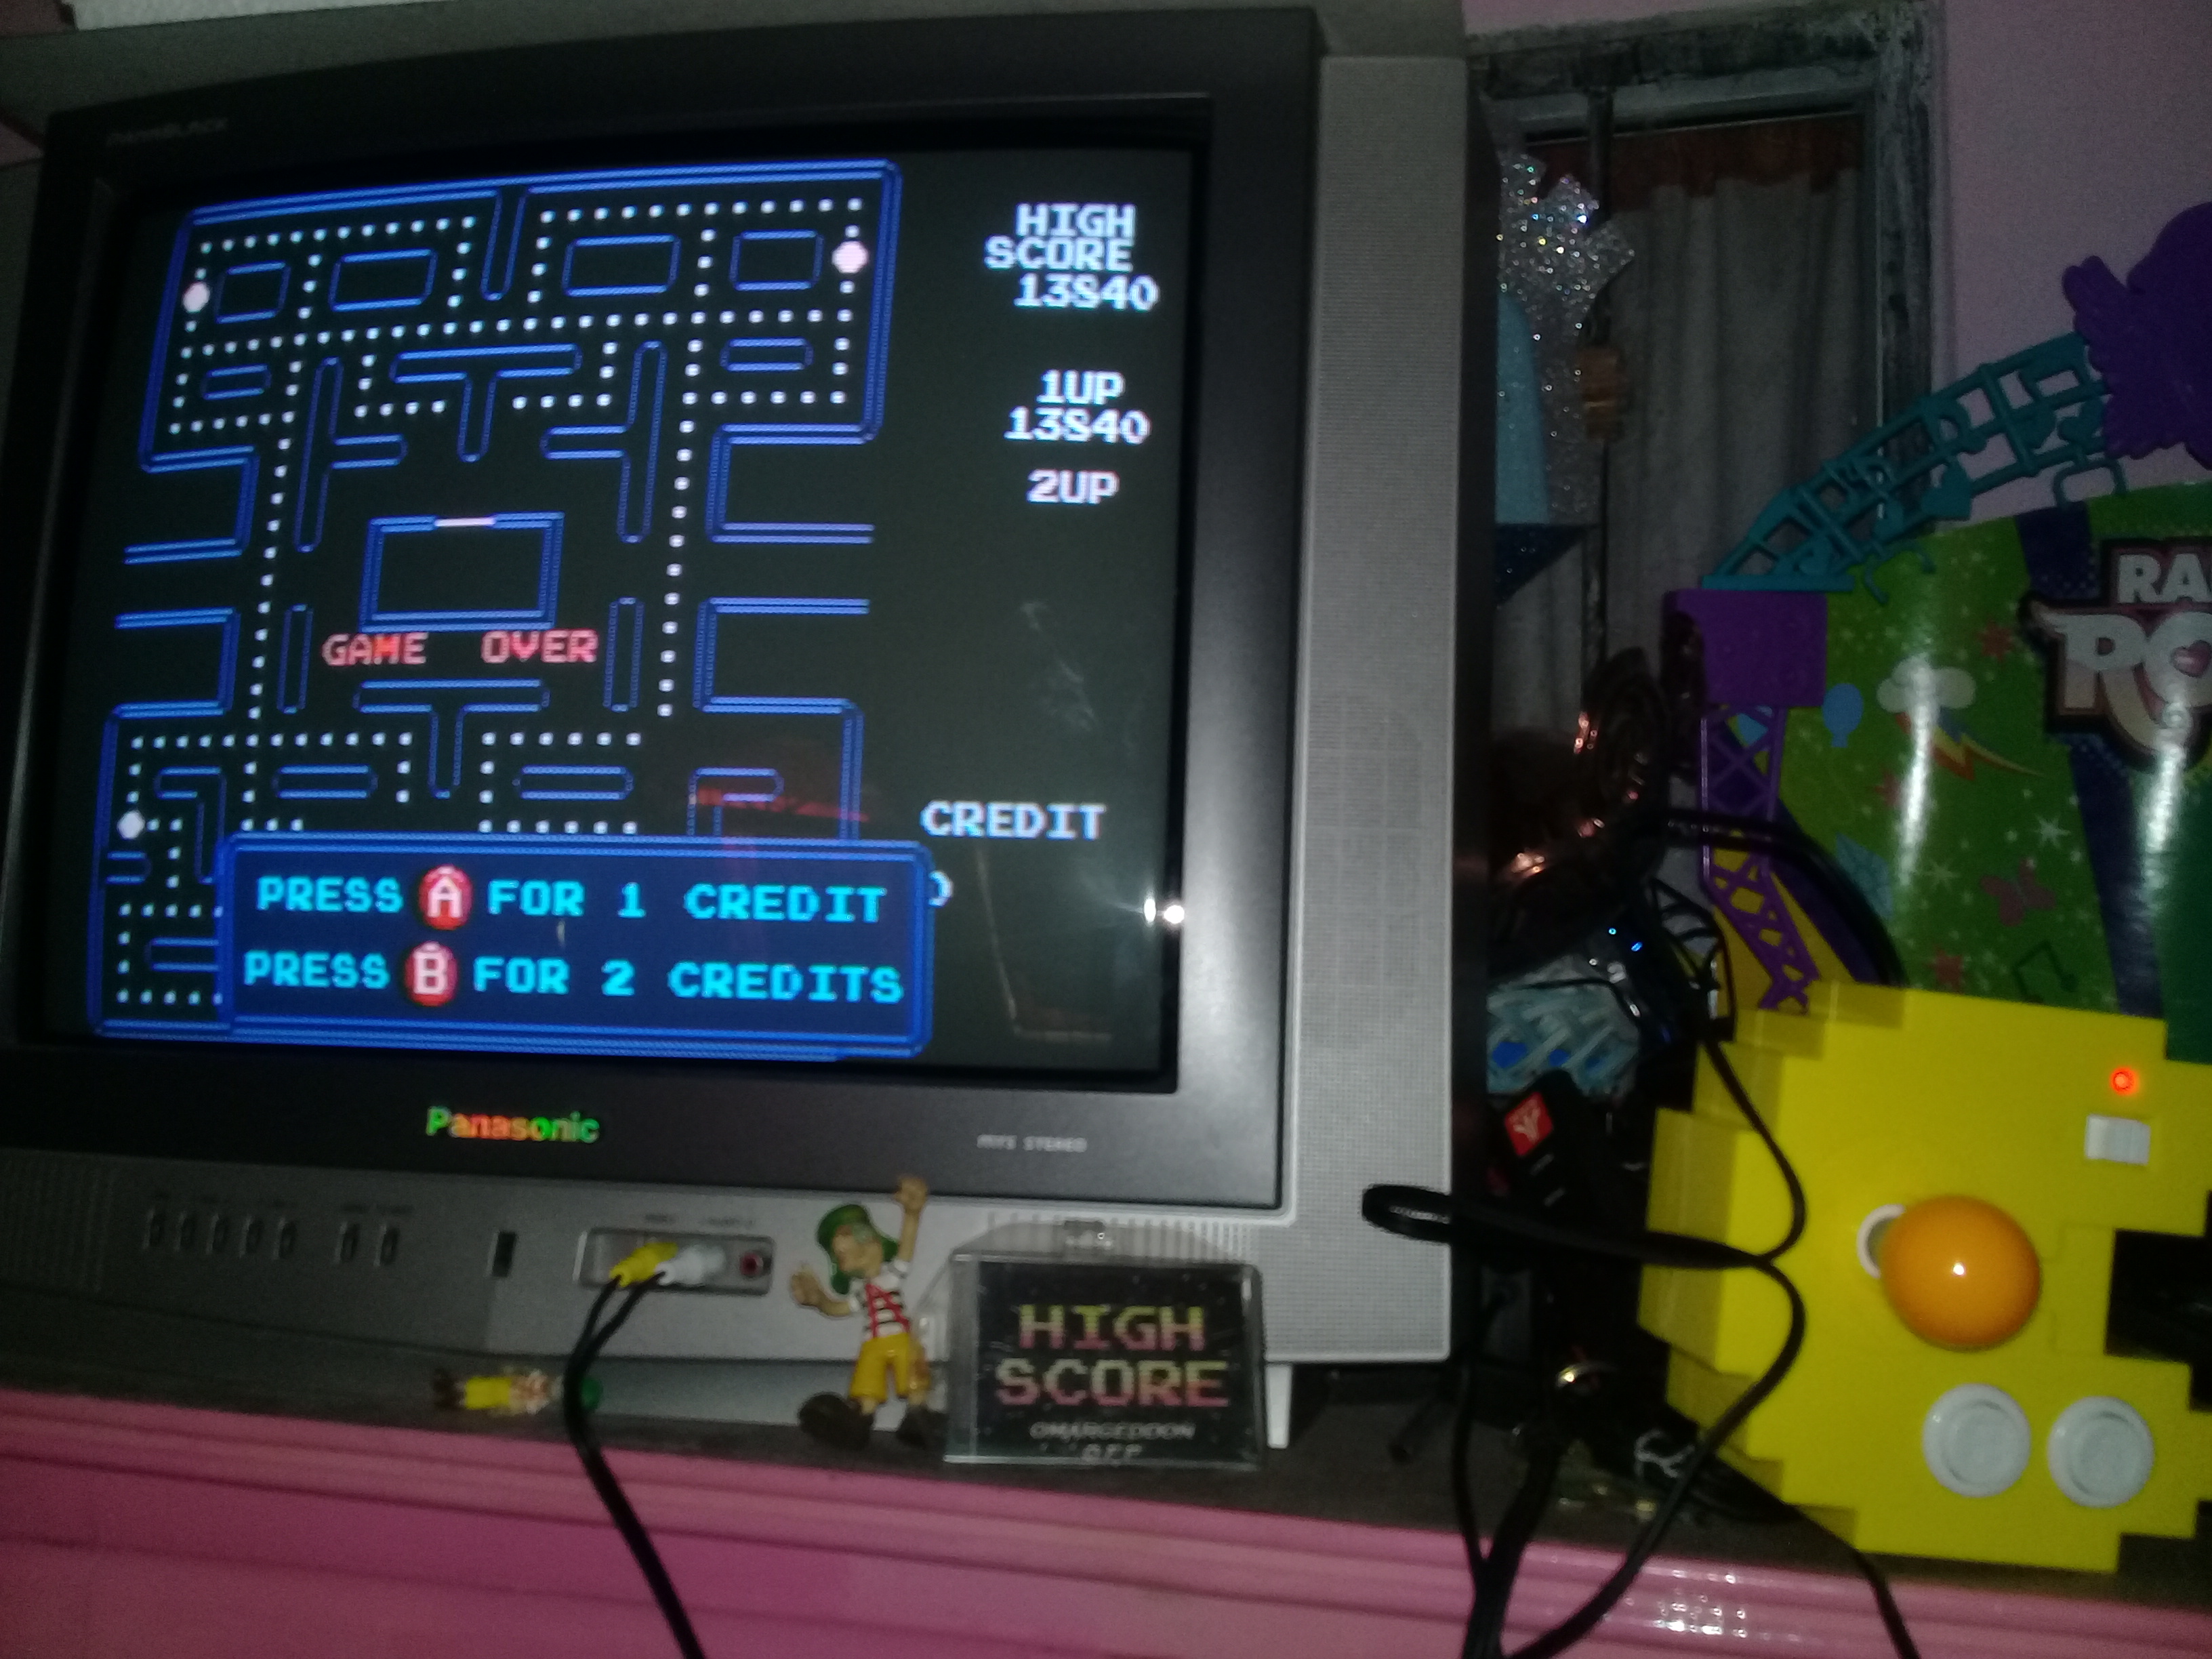 omargeddon: Pac-Man 256 (Bandai Pac-Man Connect and Play) 13,840 points on 2018-12-20 17:08:05